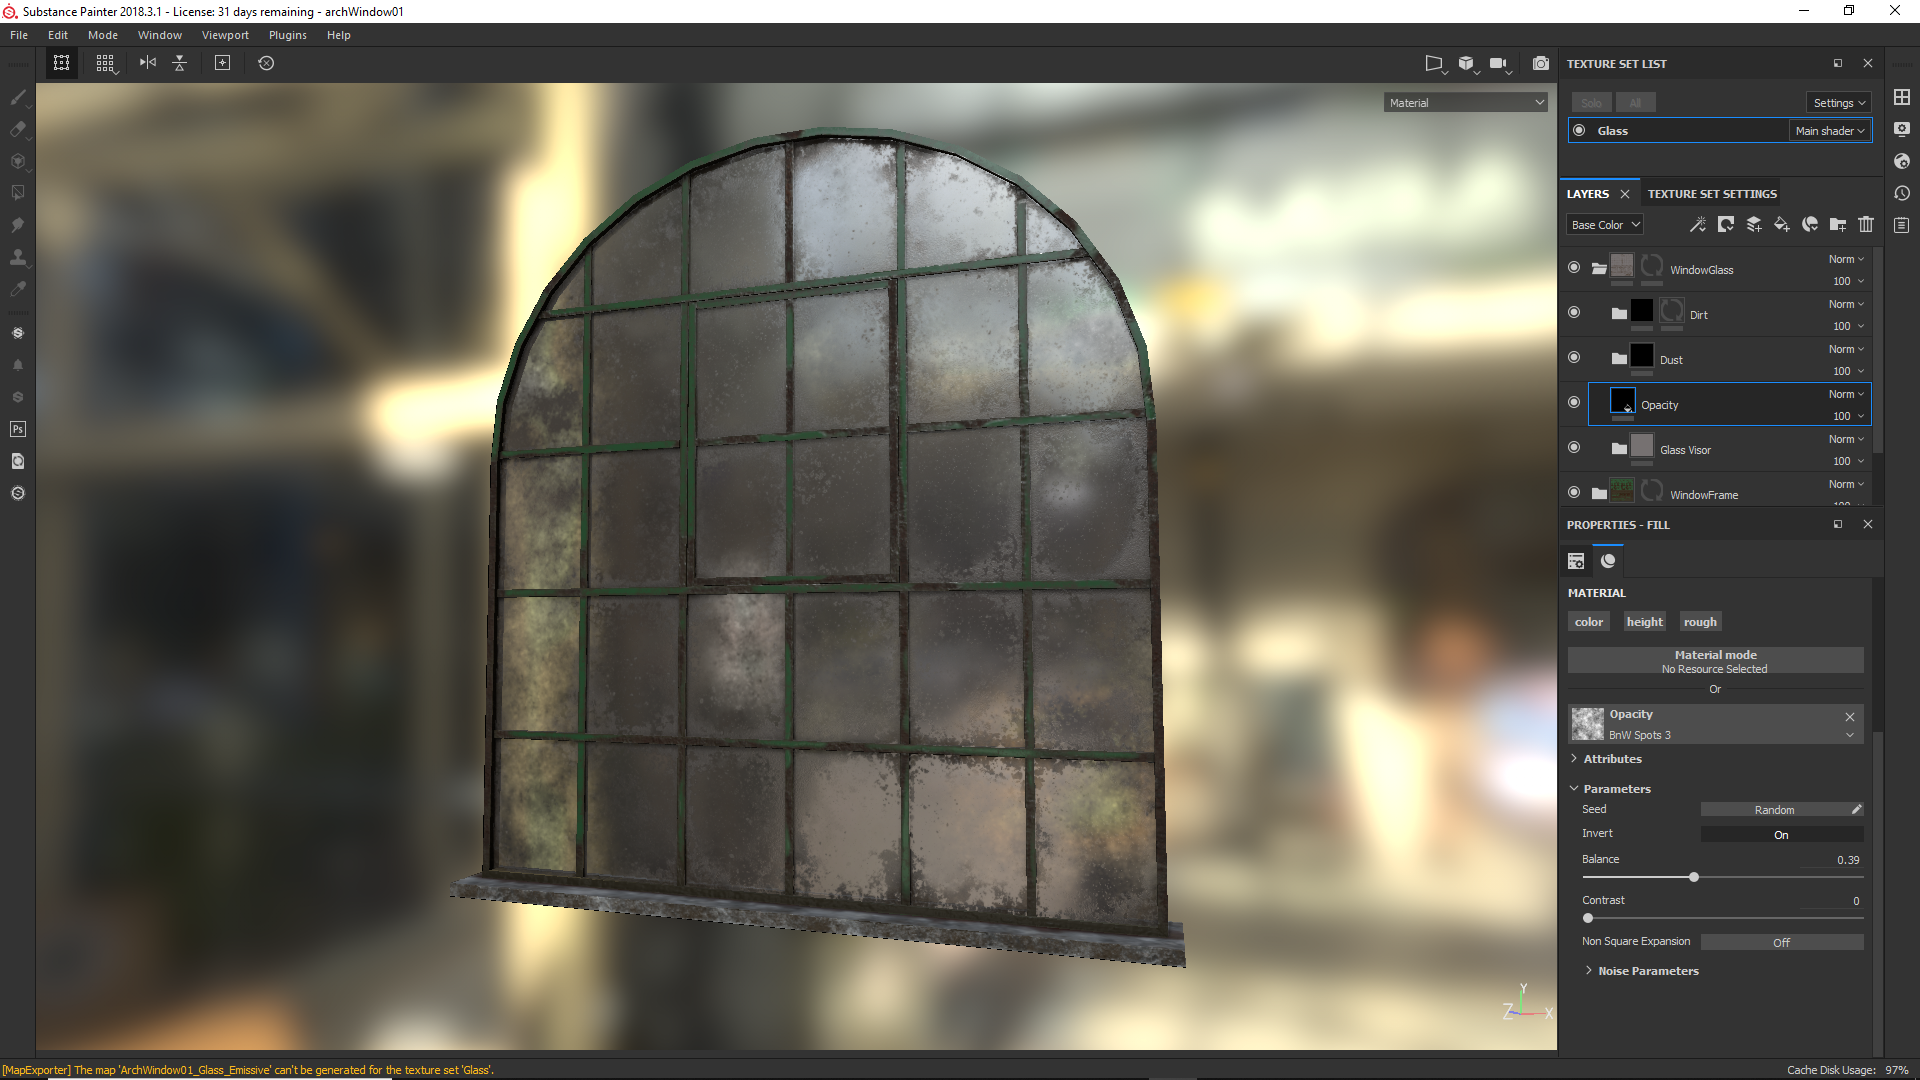 Opacity in UE4 what am I doing wrong?